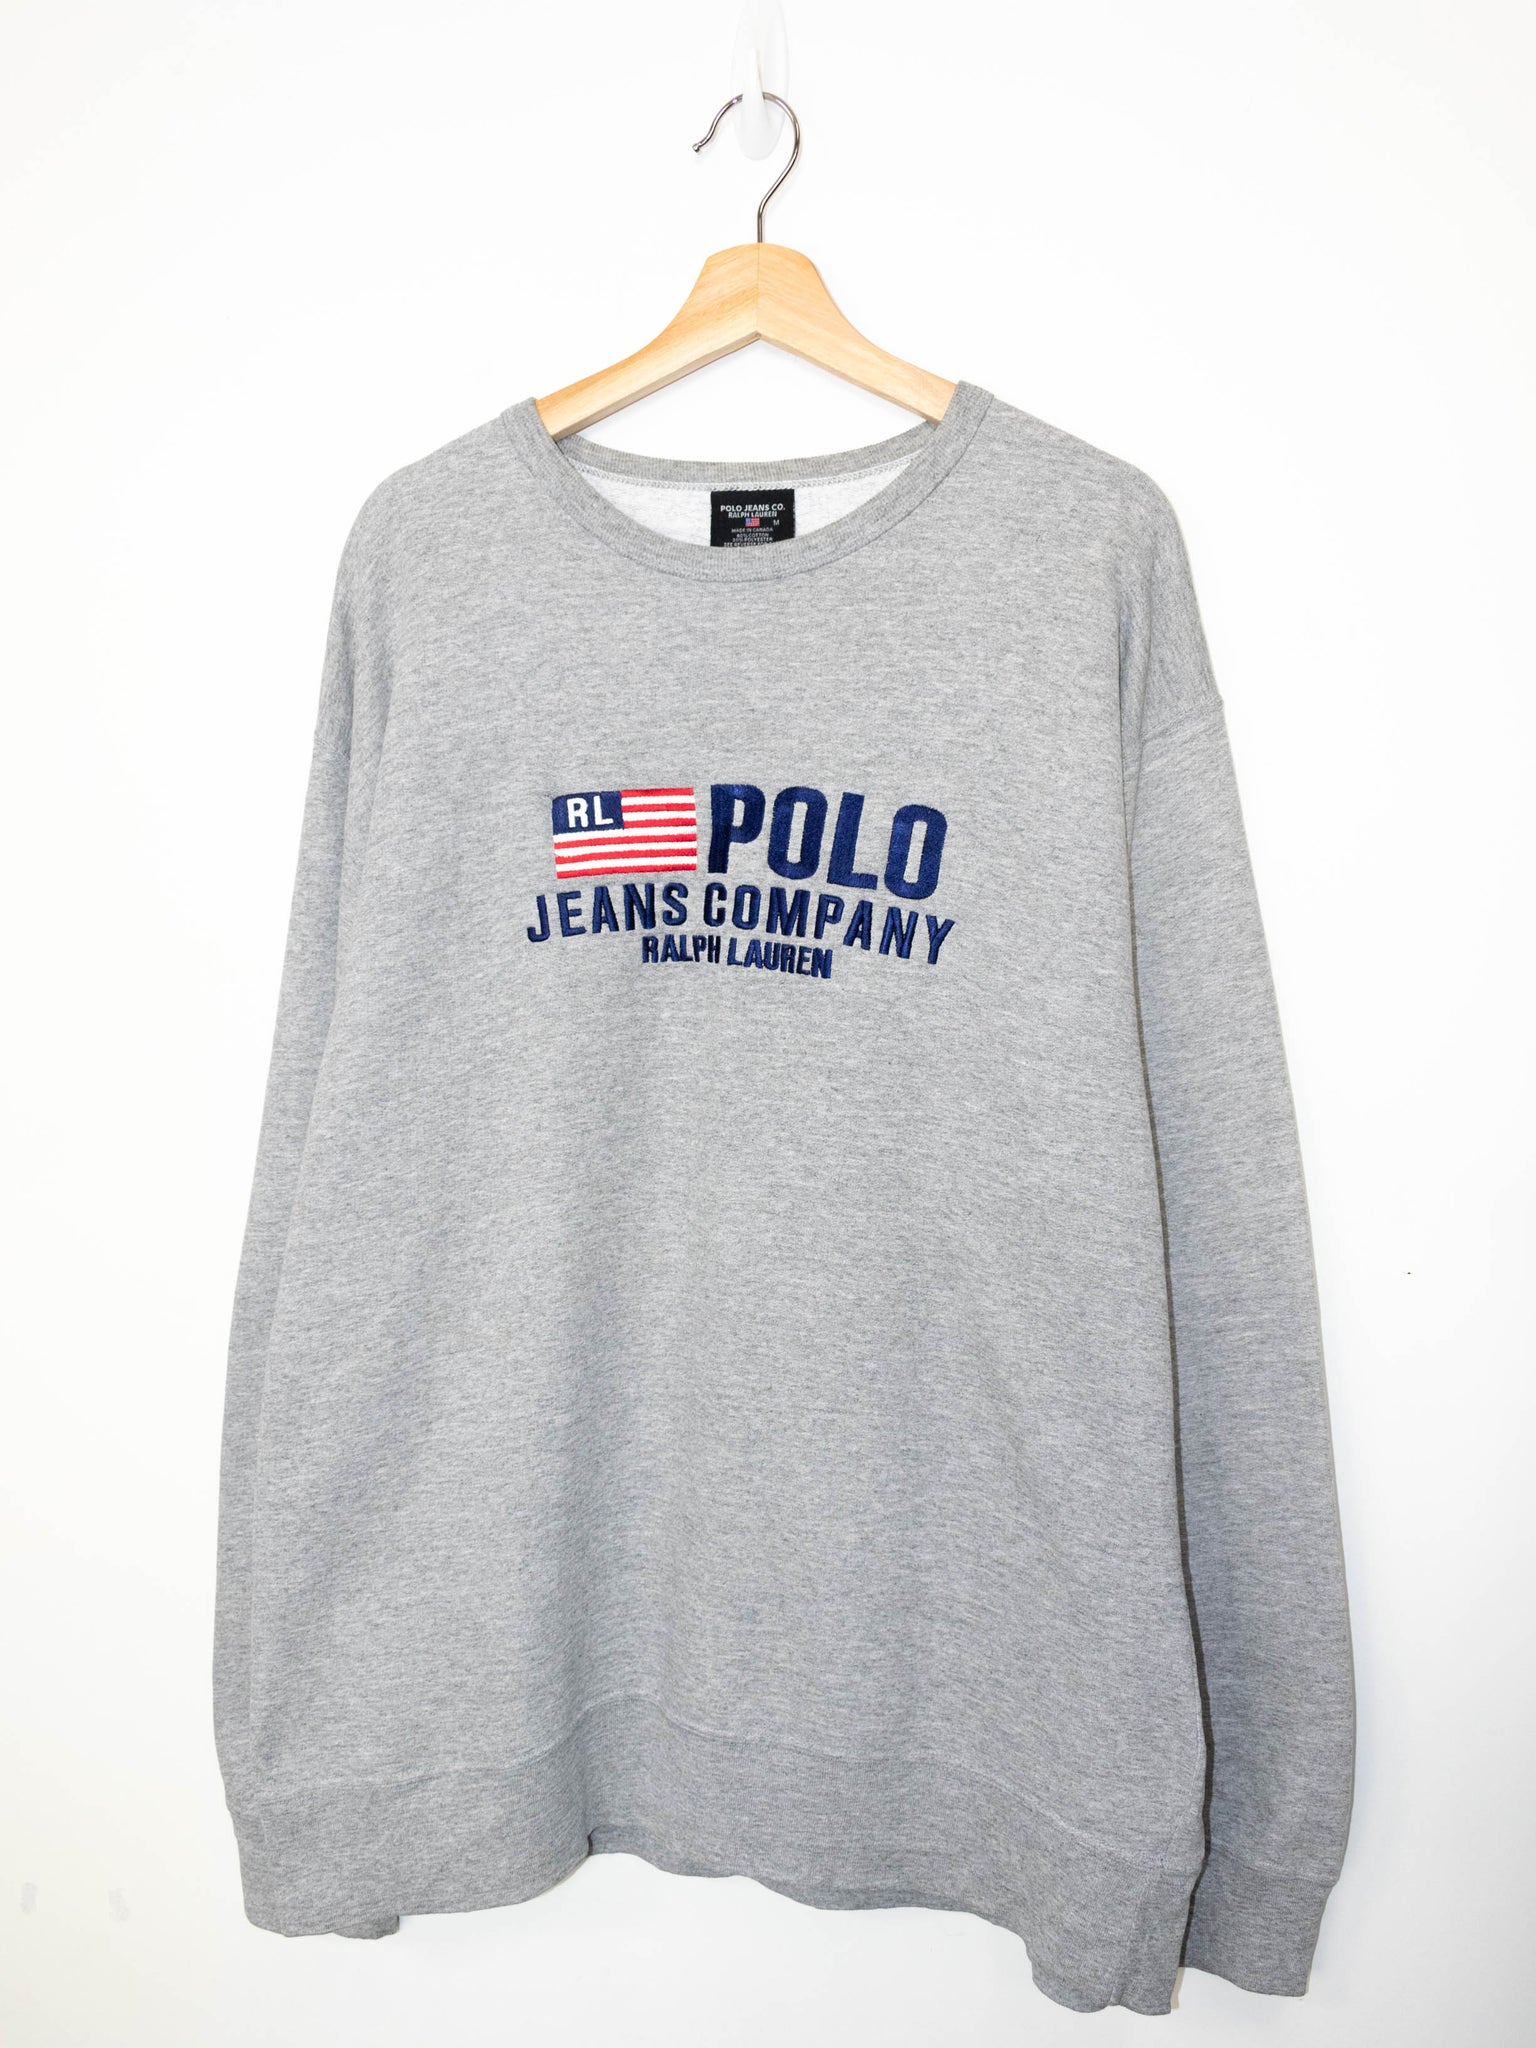 Vintage Polo Ralph Lauren sweater size: M